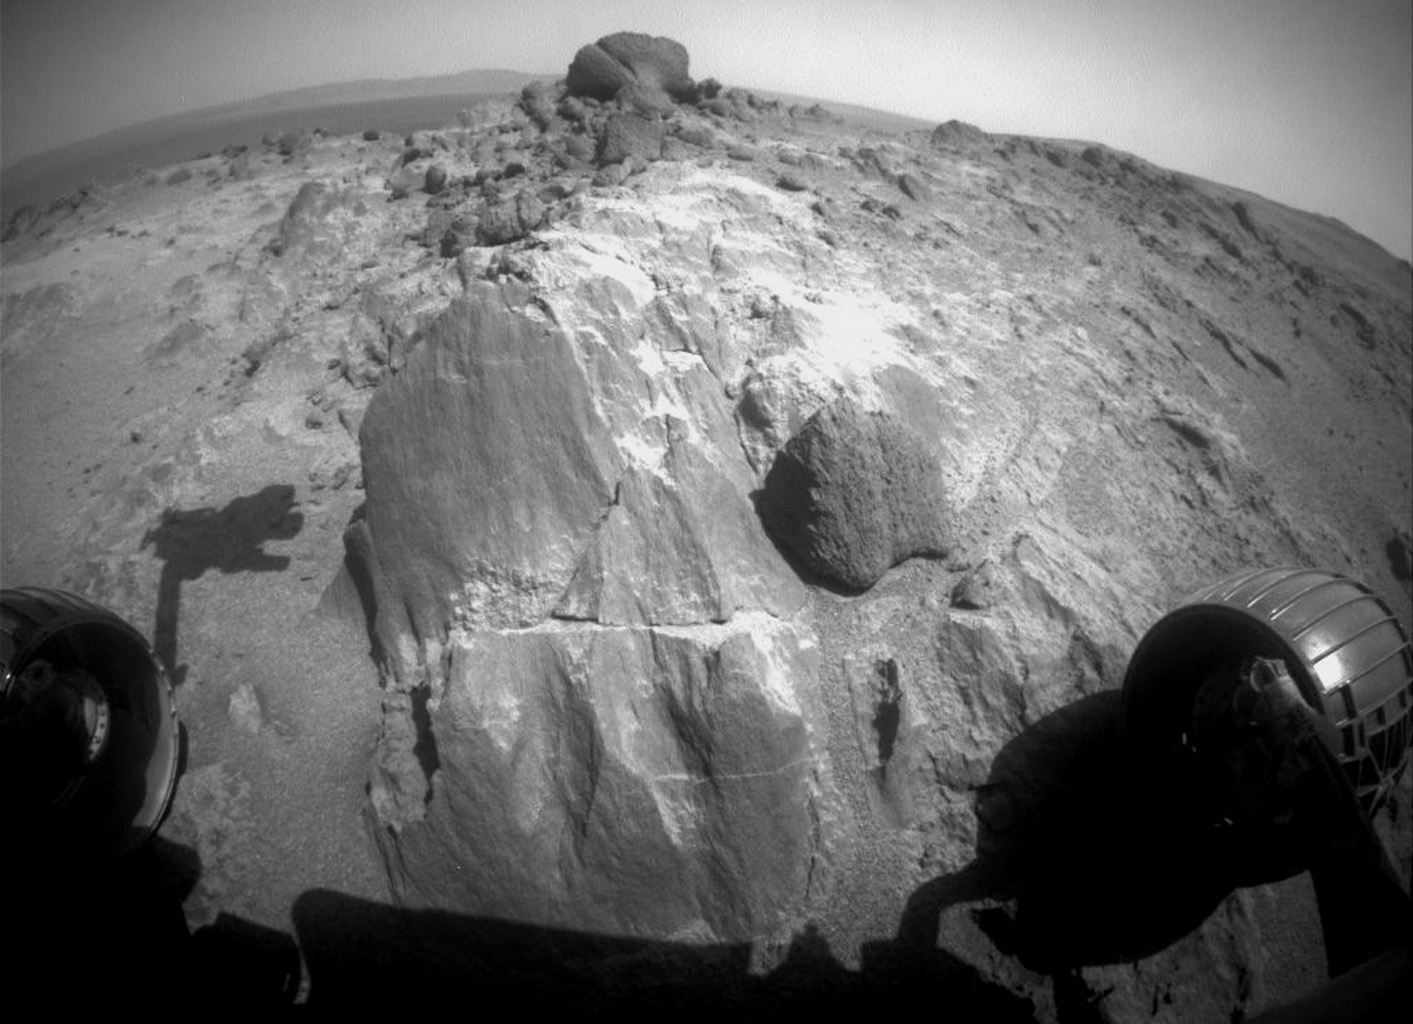 On Mars, Opportunity Rover Spots Weird Rocks Near Marathon Finish Line